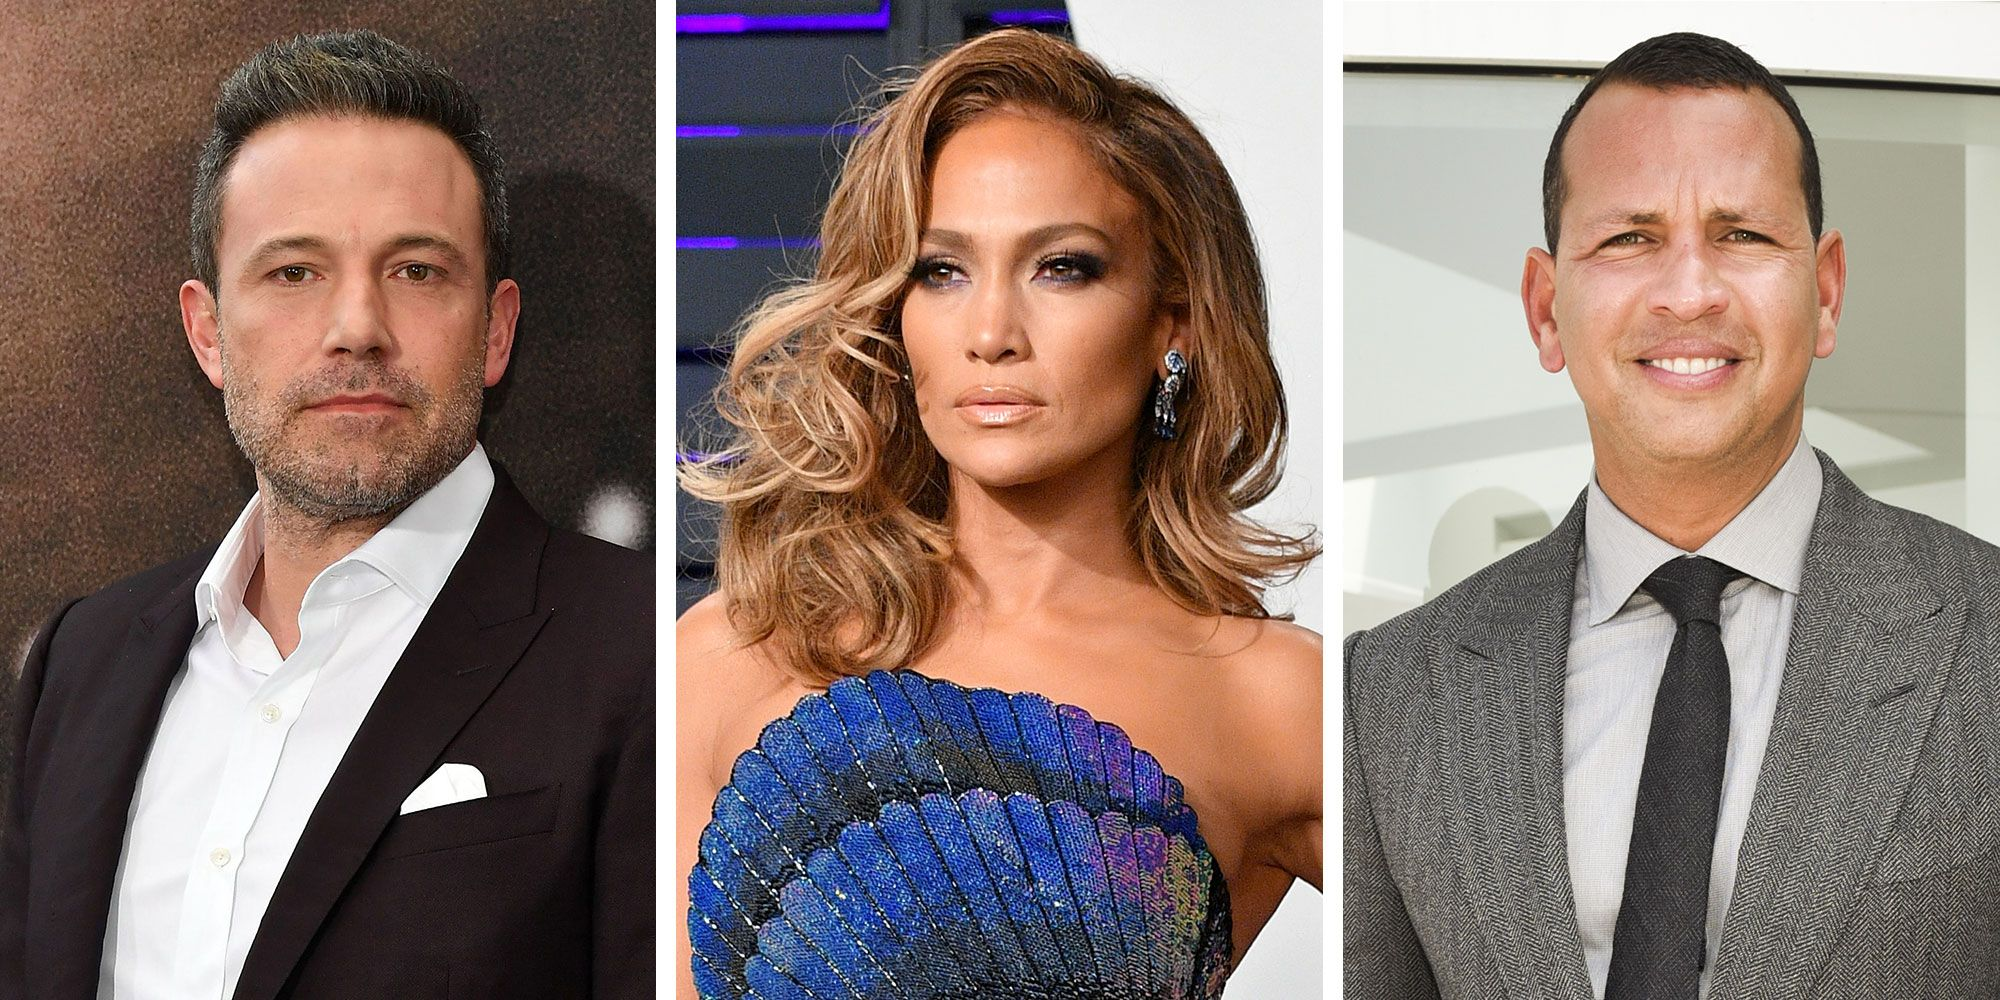 """""""jennifer-lopez-and-ben-affleck-reportedly-first-reunited-to-get-a-reaction-out-of-alex-rodriguez-but-she-caught-feelings-source-says"""""""